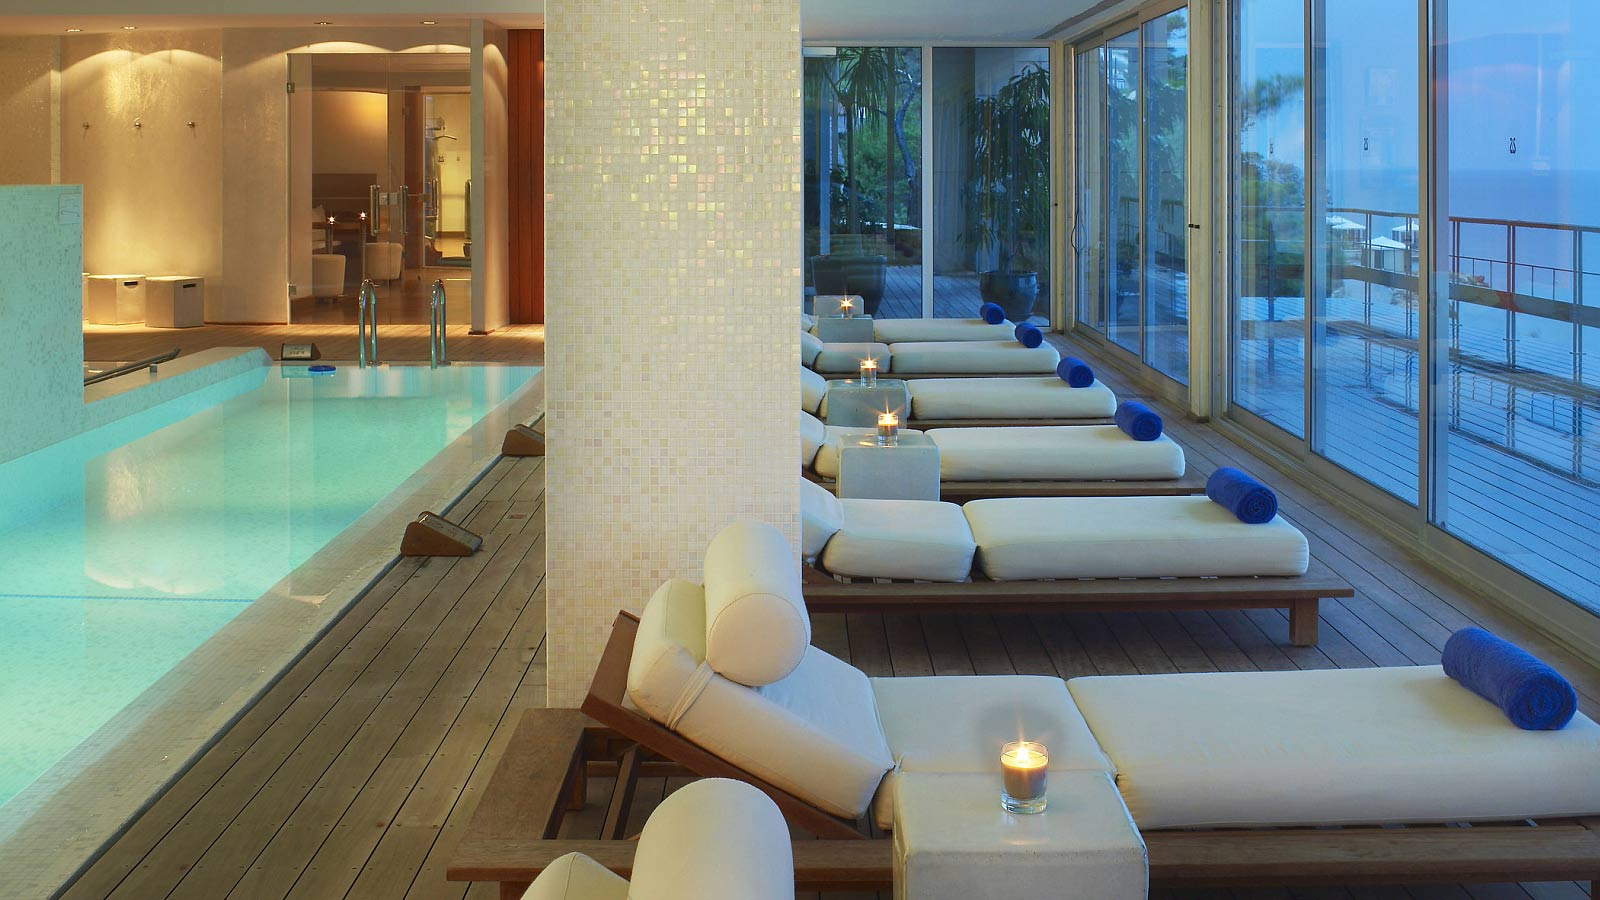 SPG Hot Escapes - Arion, A Luxury Collection Hotel Athens